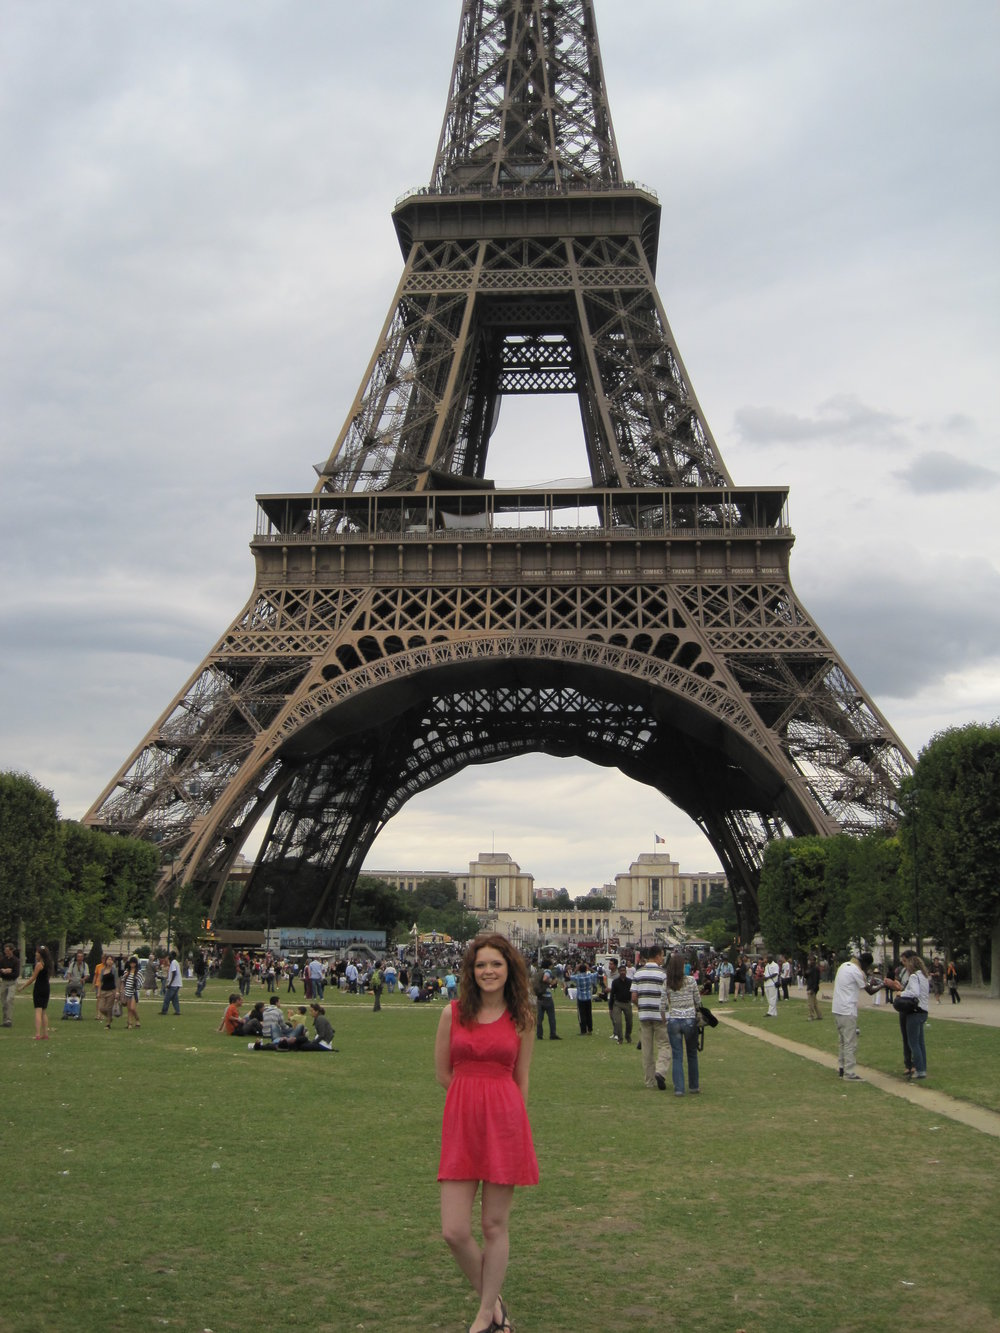 Kelsey in front of the Eiffel Tower in Paris, France.